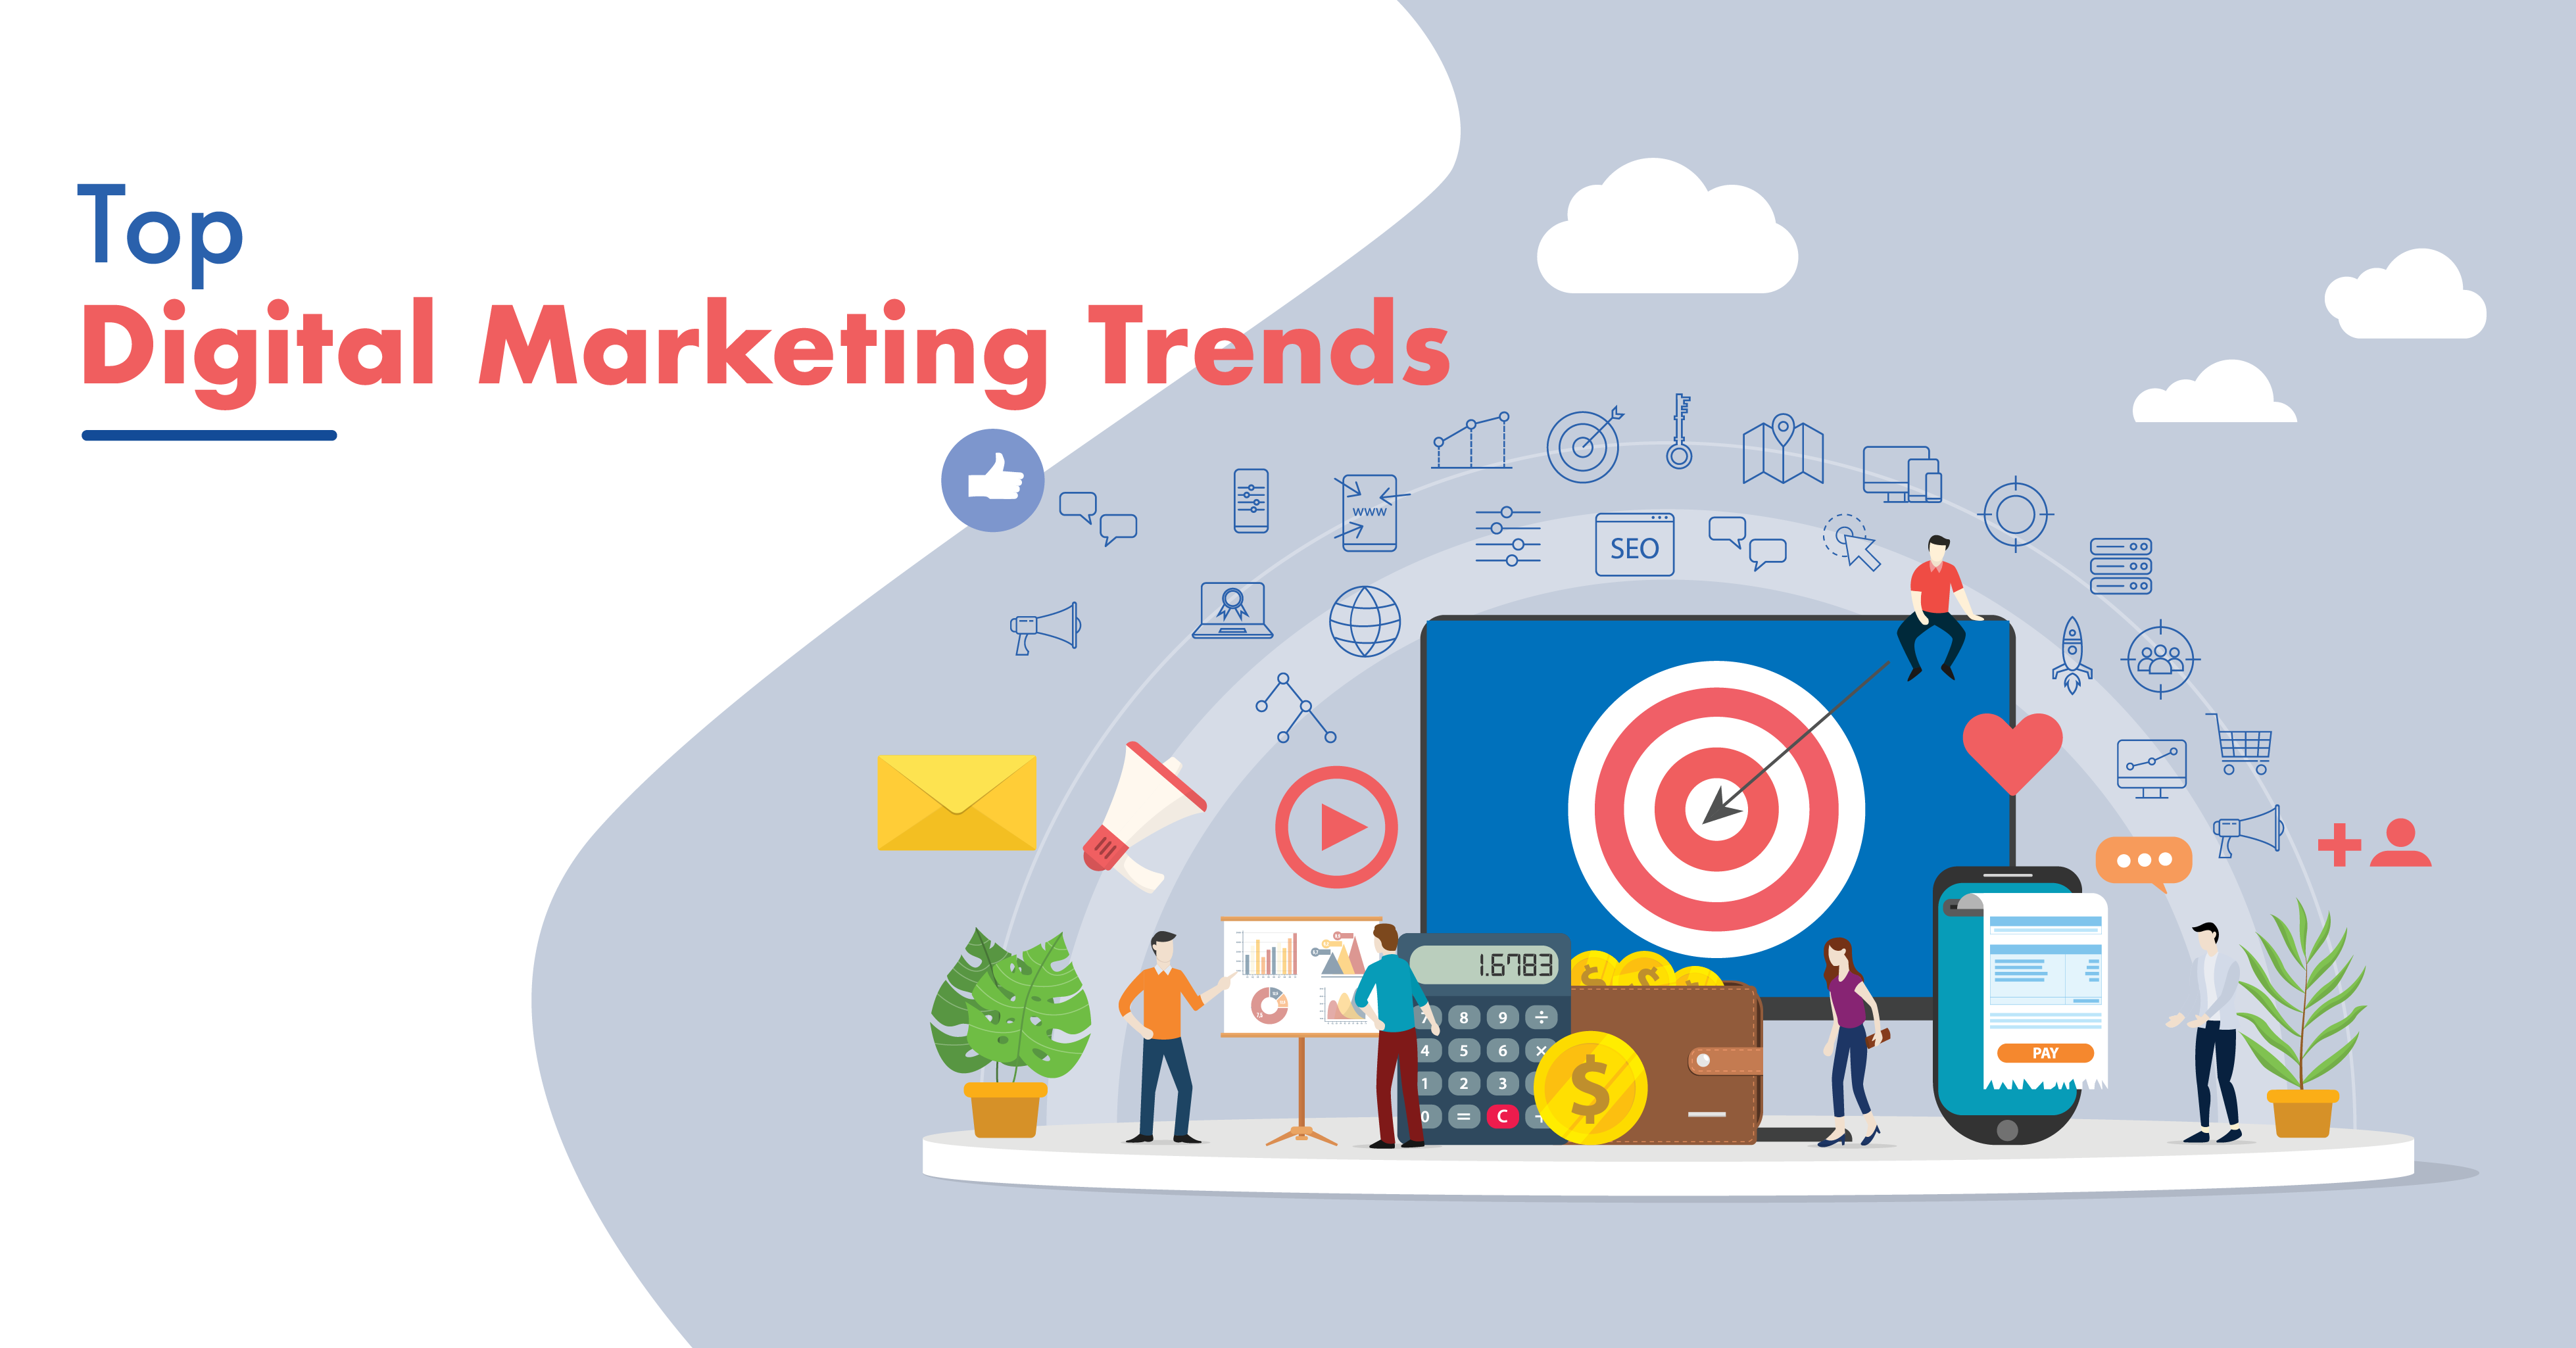 Digital Marketing Trends- What To Expect In 2020